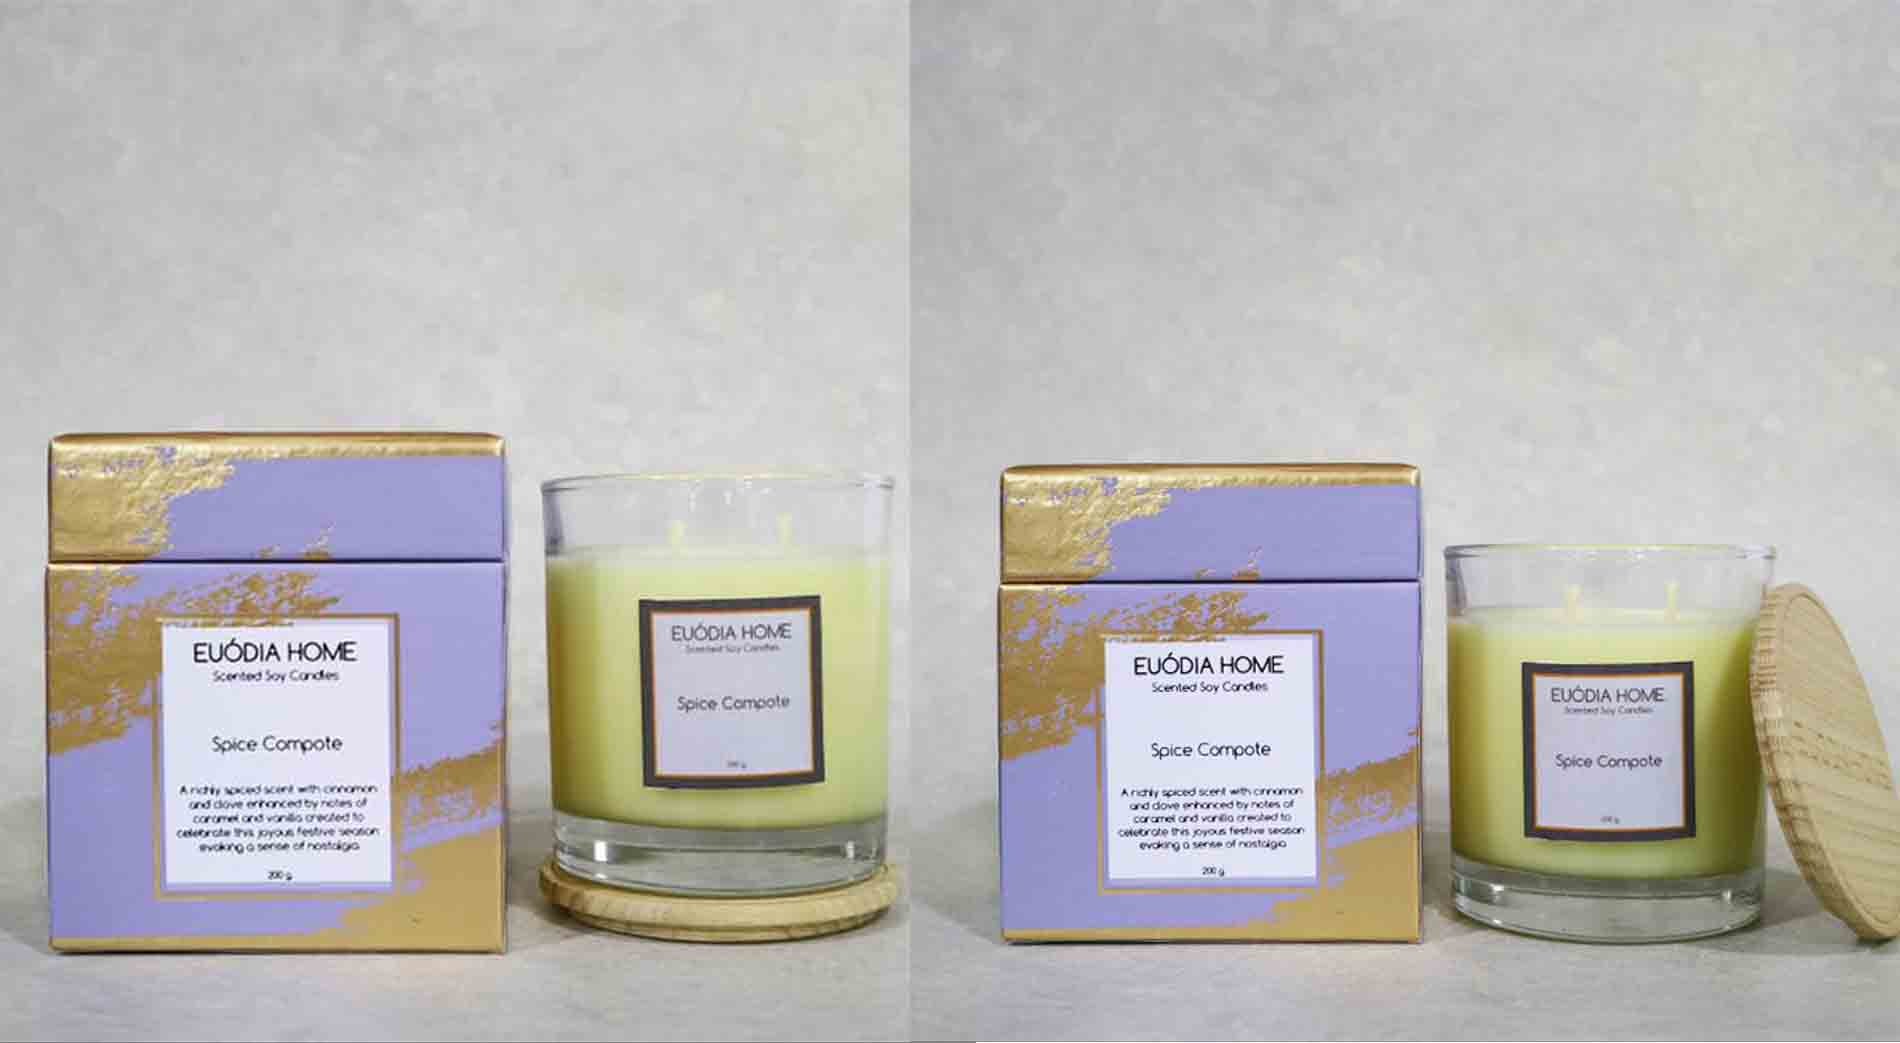 Euodia Home Spice Compote Soy Scented Candle